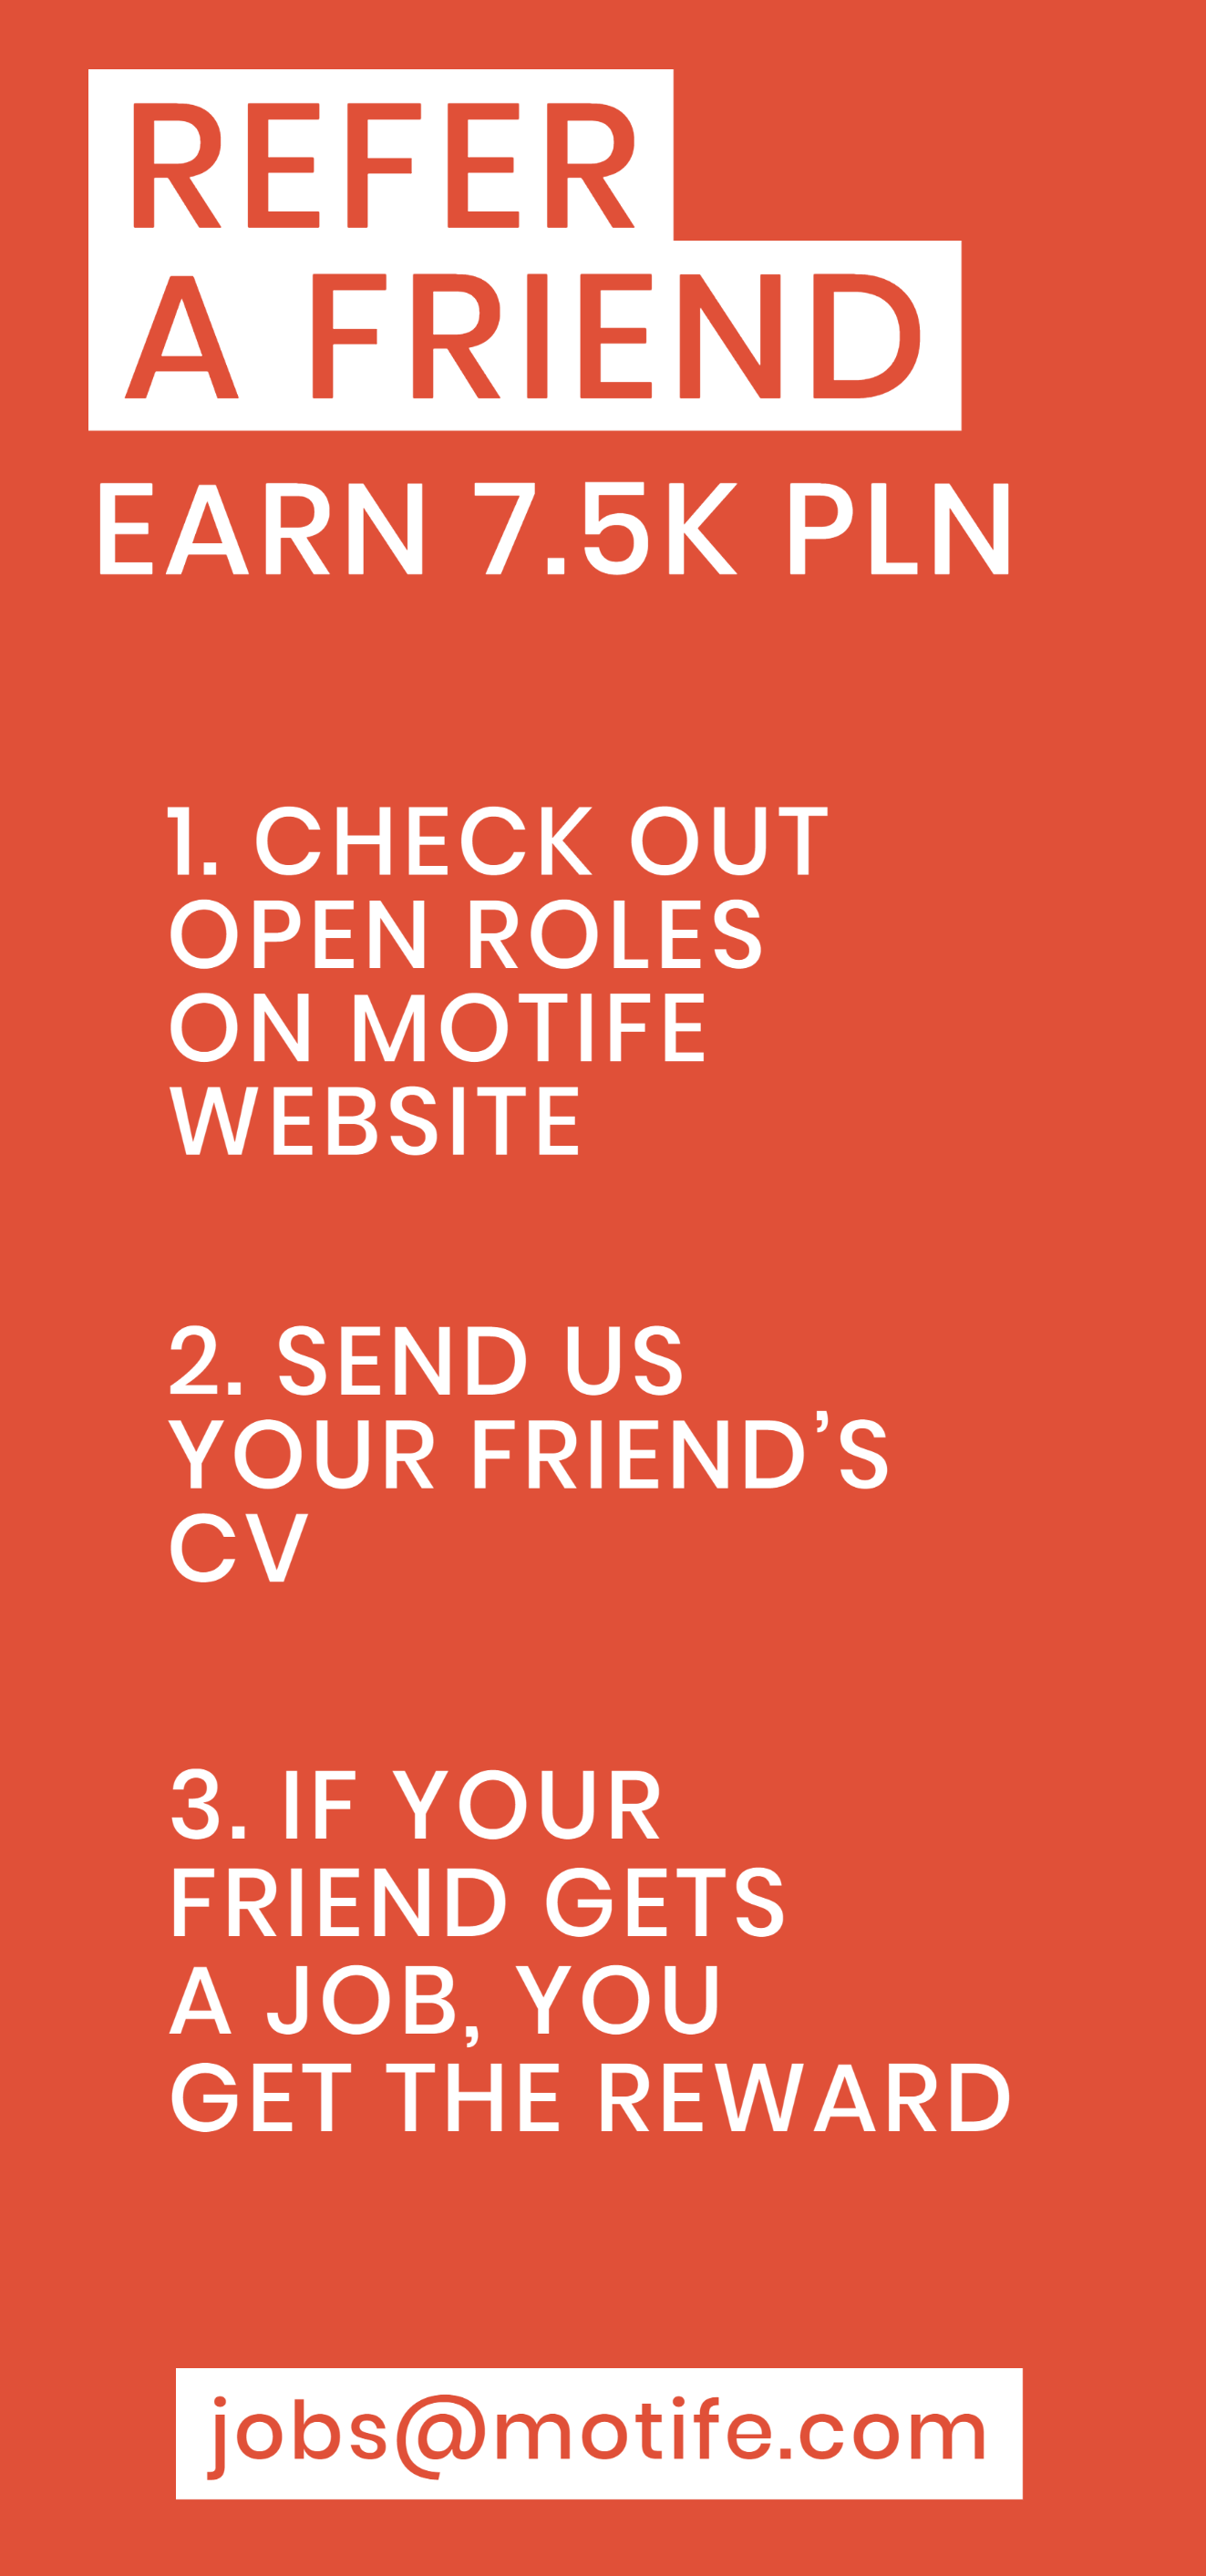 Refer a friend for a job